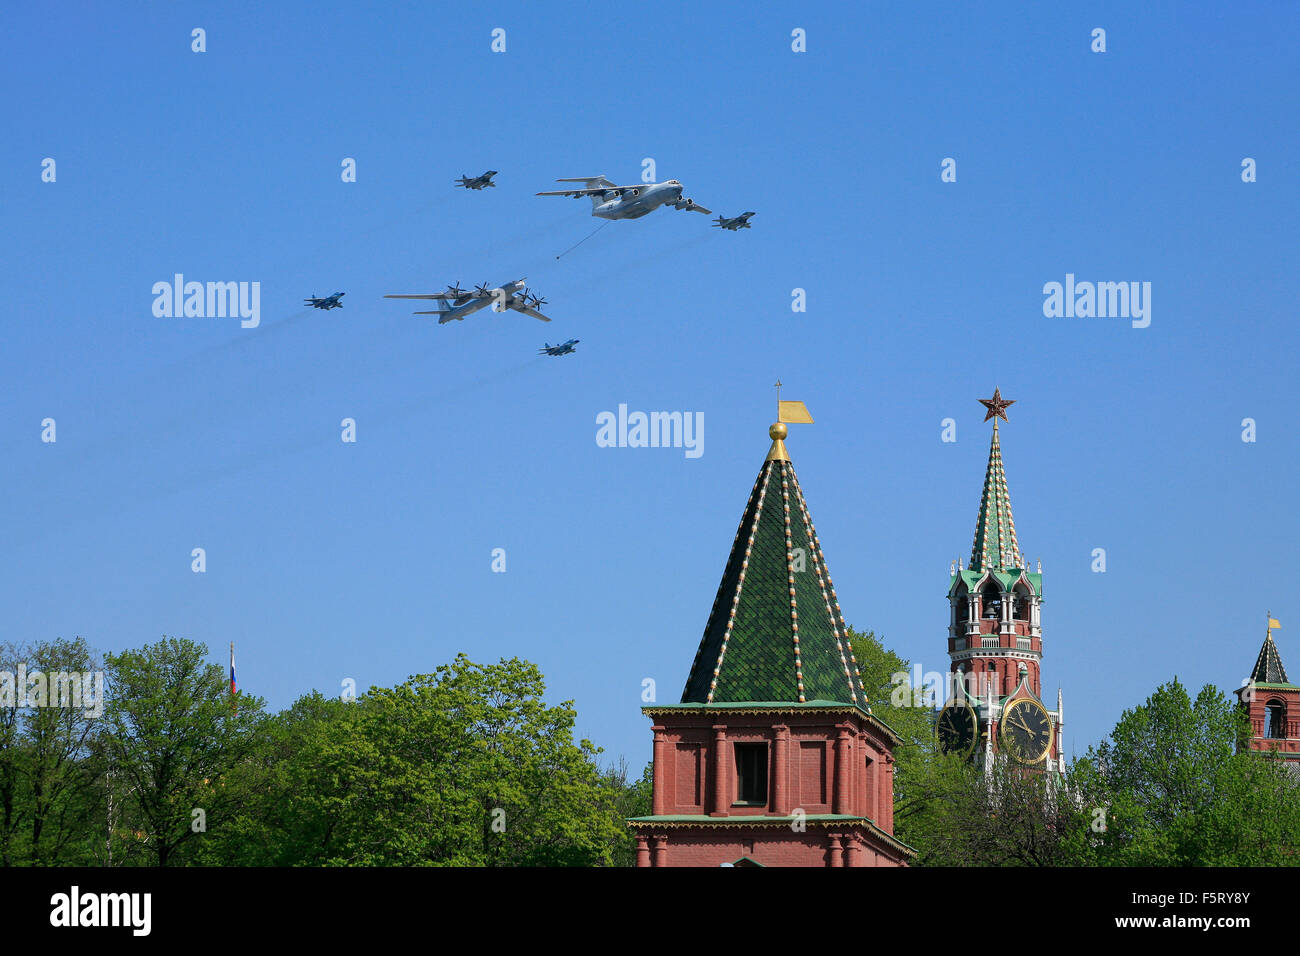 4 Russian MiG-29 fighter jets, an Ilyushin Il-78 refueling tanker and a Tupolev Tu-95 turboprop long range bomber - Stock Image